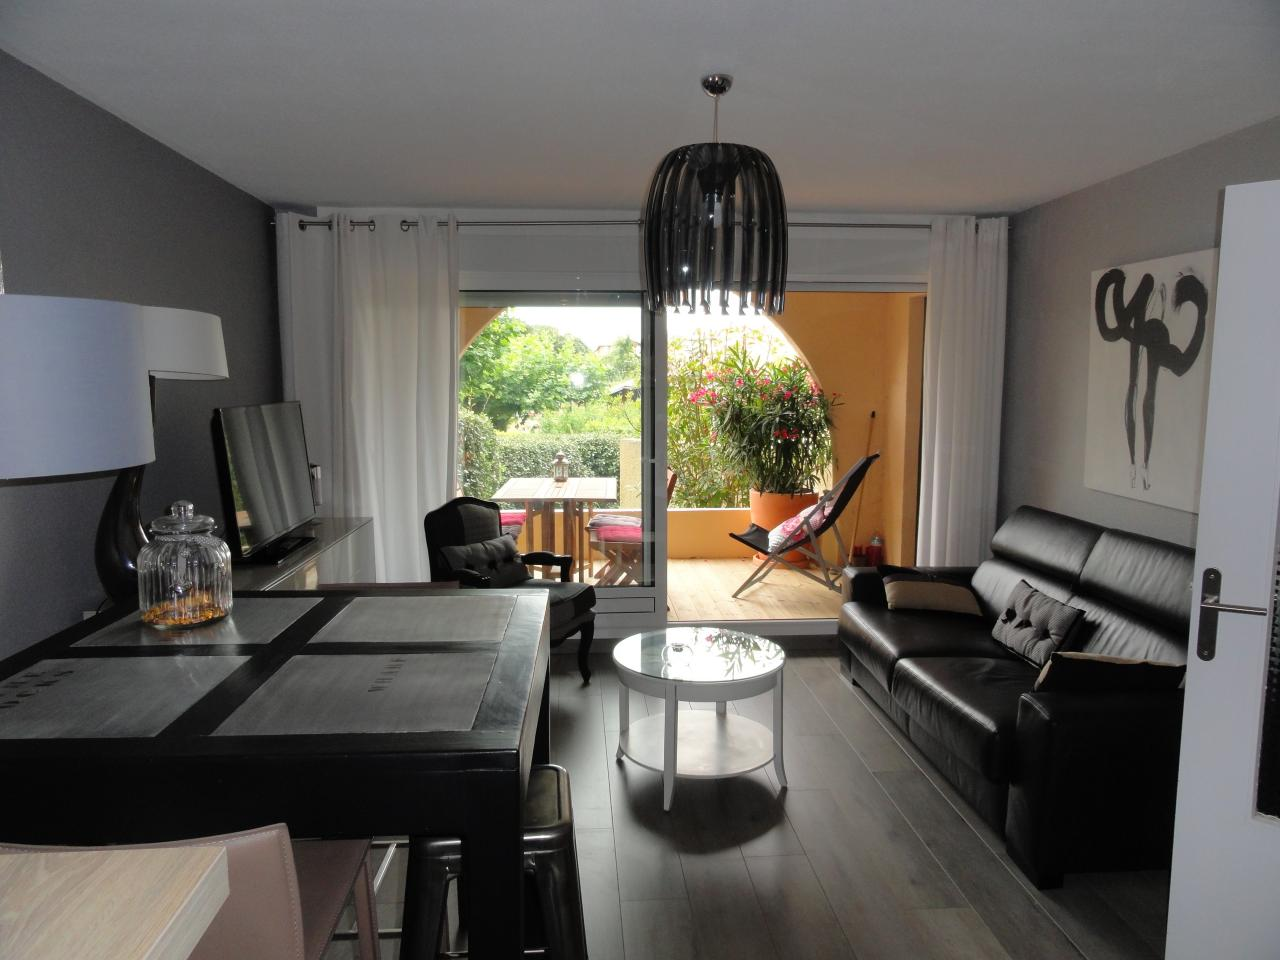 Appartement t2 anglet anglet location pays basque 64 for Location appartement bordeaux pellegrin t2